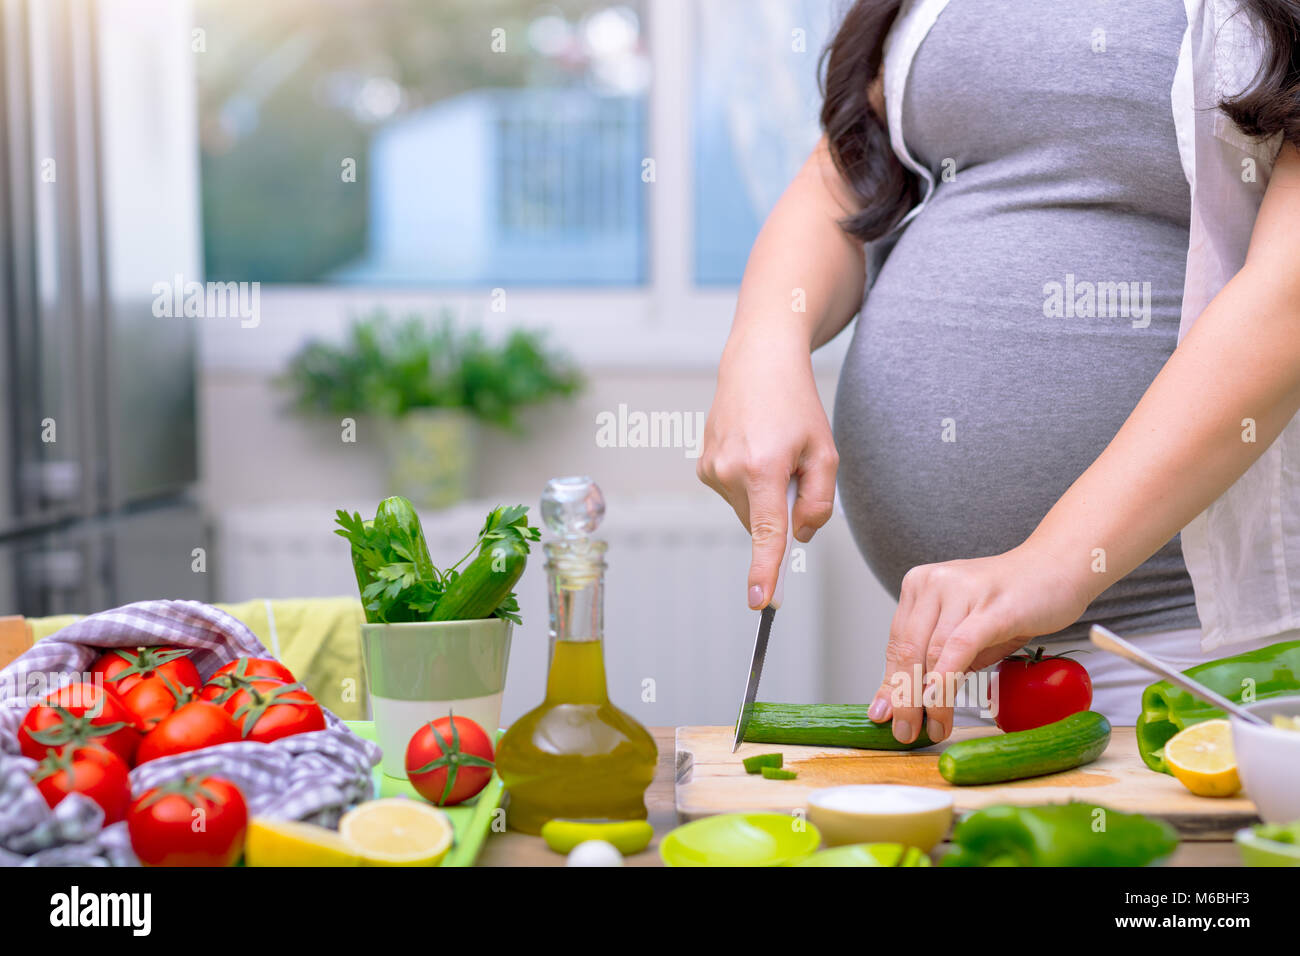 Pregnant woman cutting cucumber for fresh green salad, female prepares tasty organic dinner at home, healthy nutrition - Stock Image